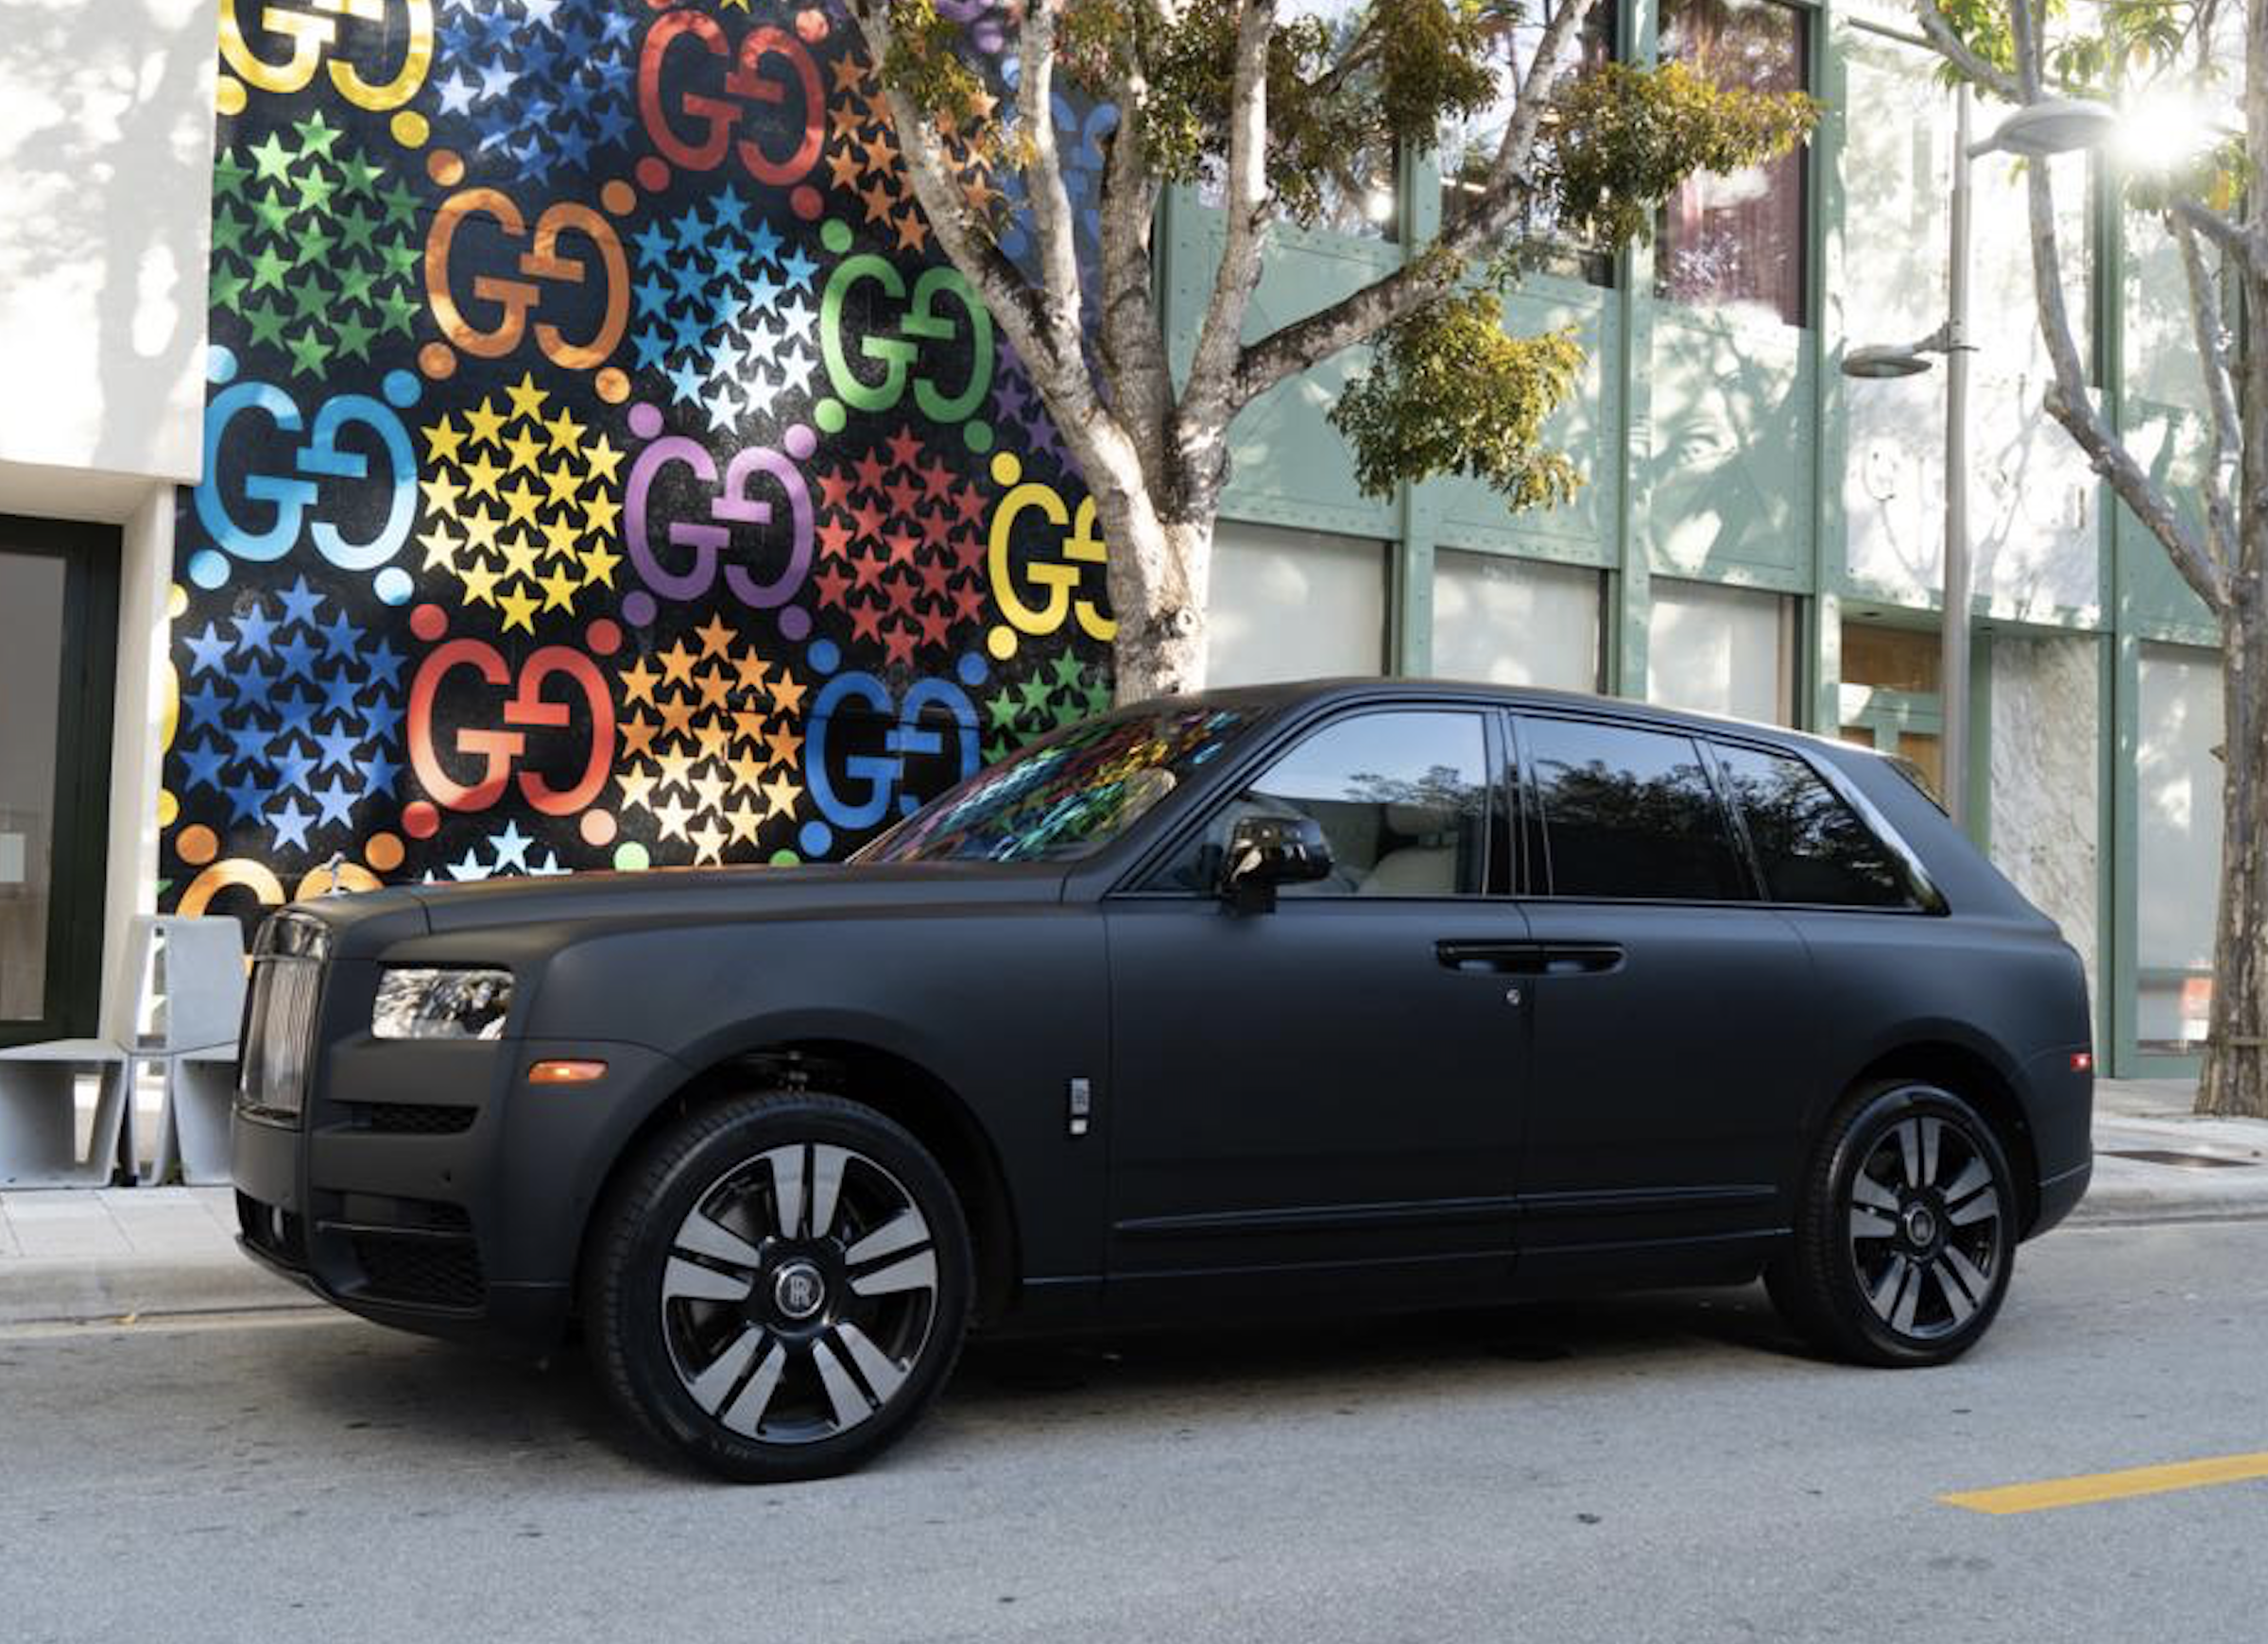 Image #9 of our  2021 ROLLS ROYCE CULLINAN - MATT BLACK    In Miami Fort Lauderdale Palm Beach South Florida